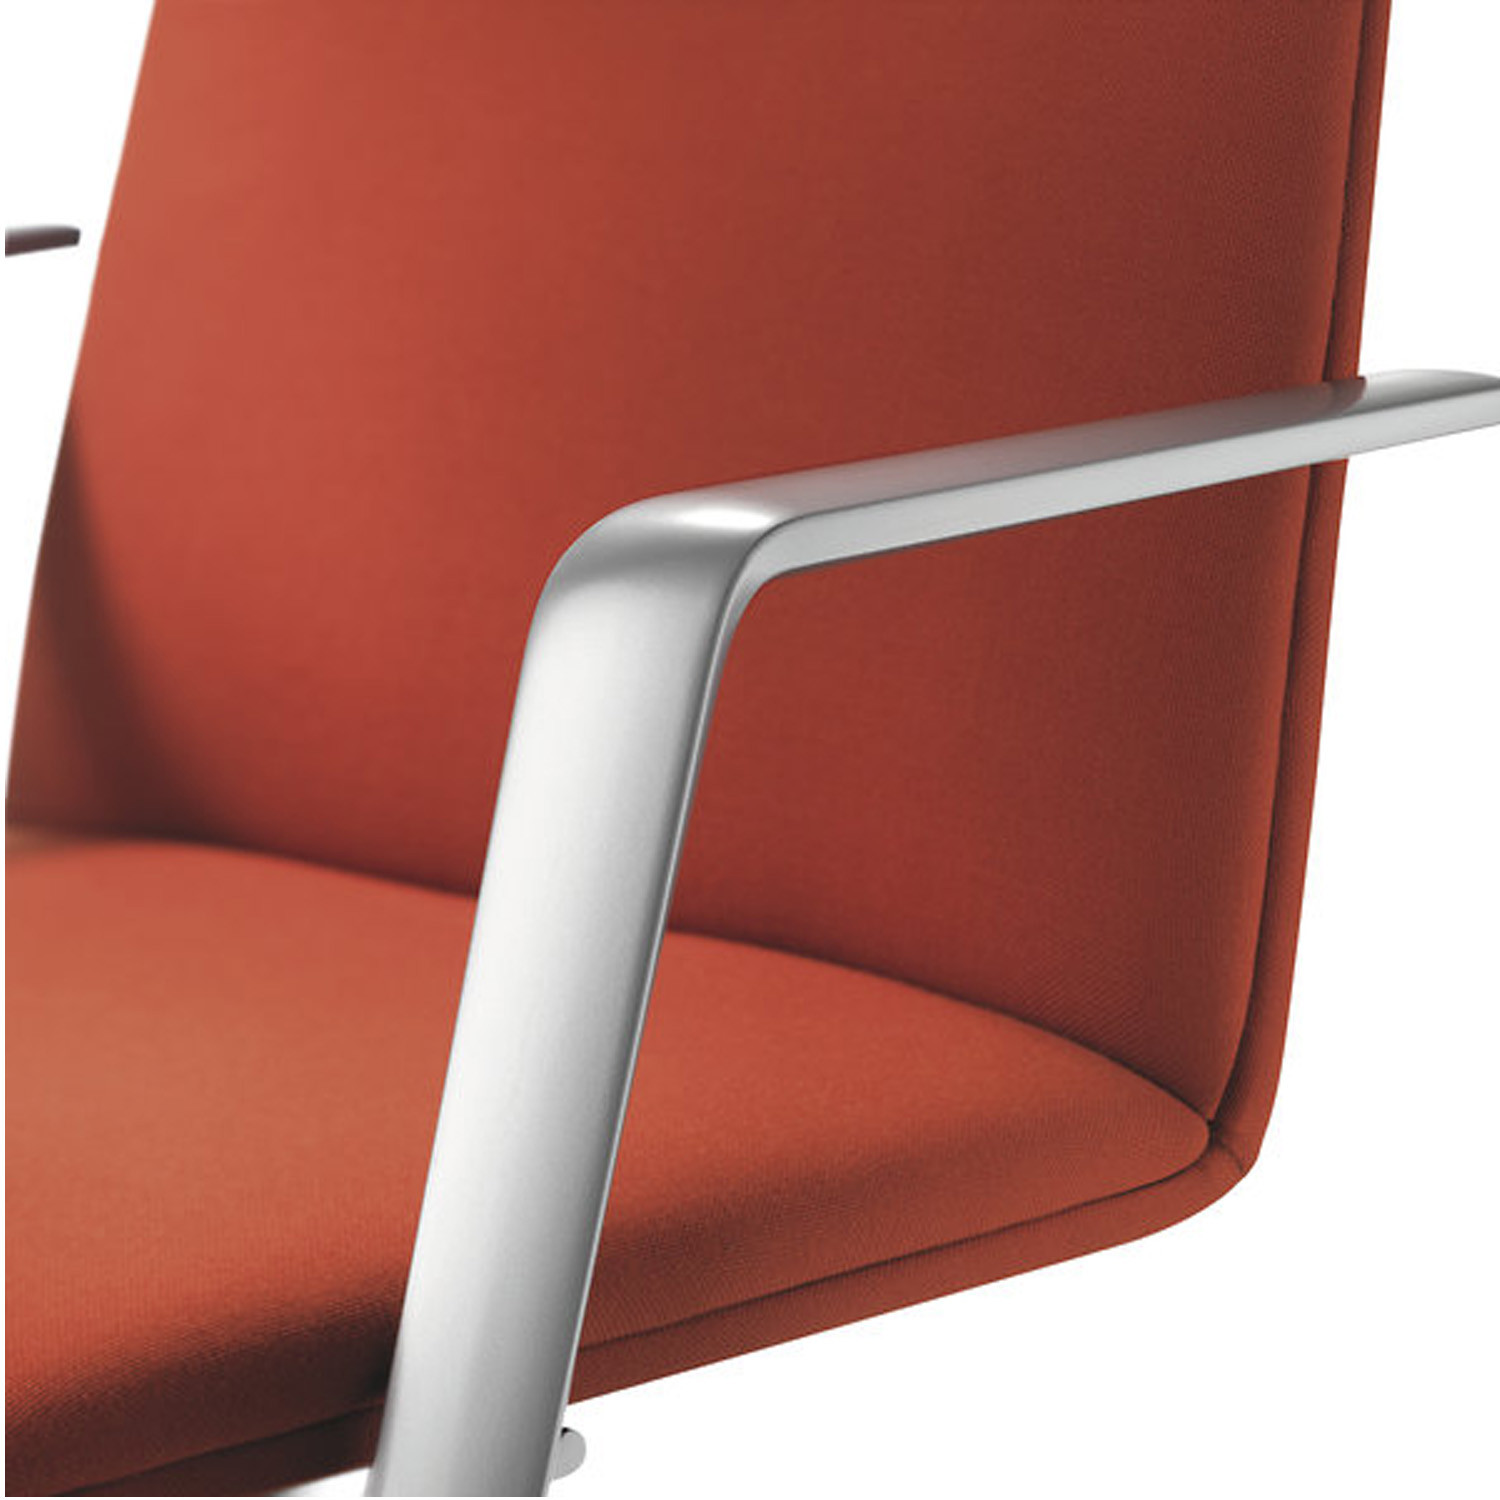 Sola Executive Office Seating by Wilkhahn